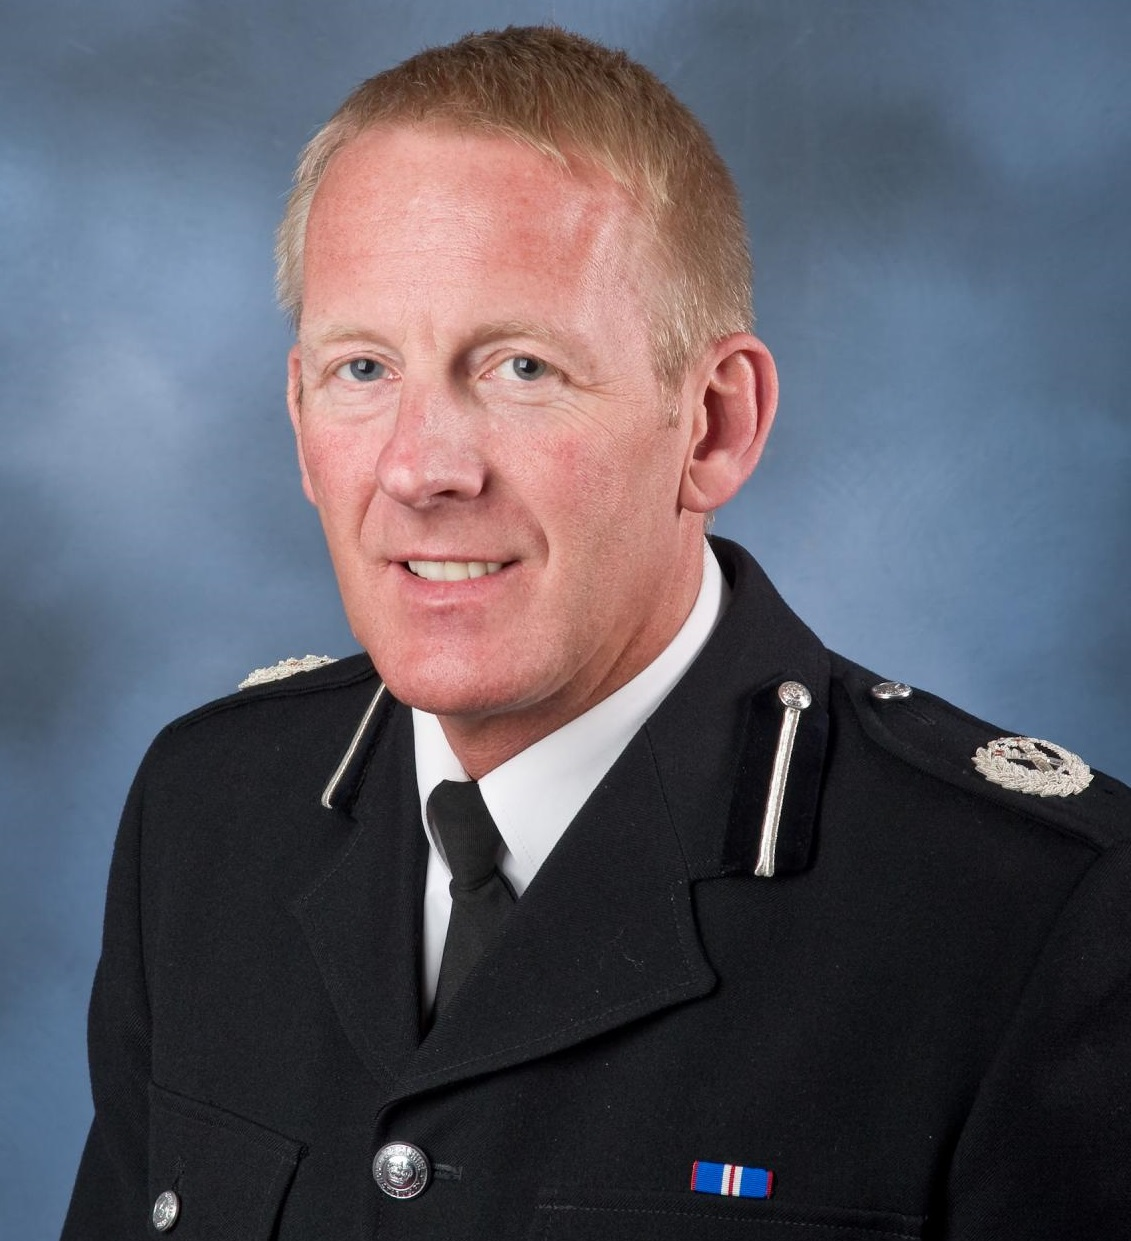 Andy Rhodes is Chief Constable for Lancashire Constabulary